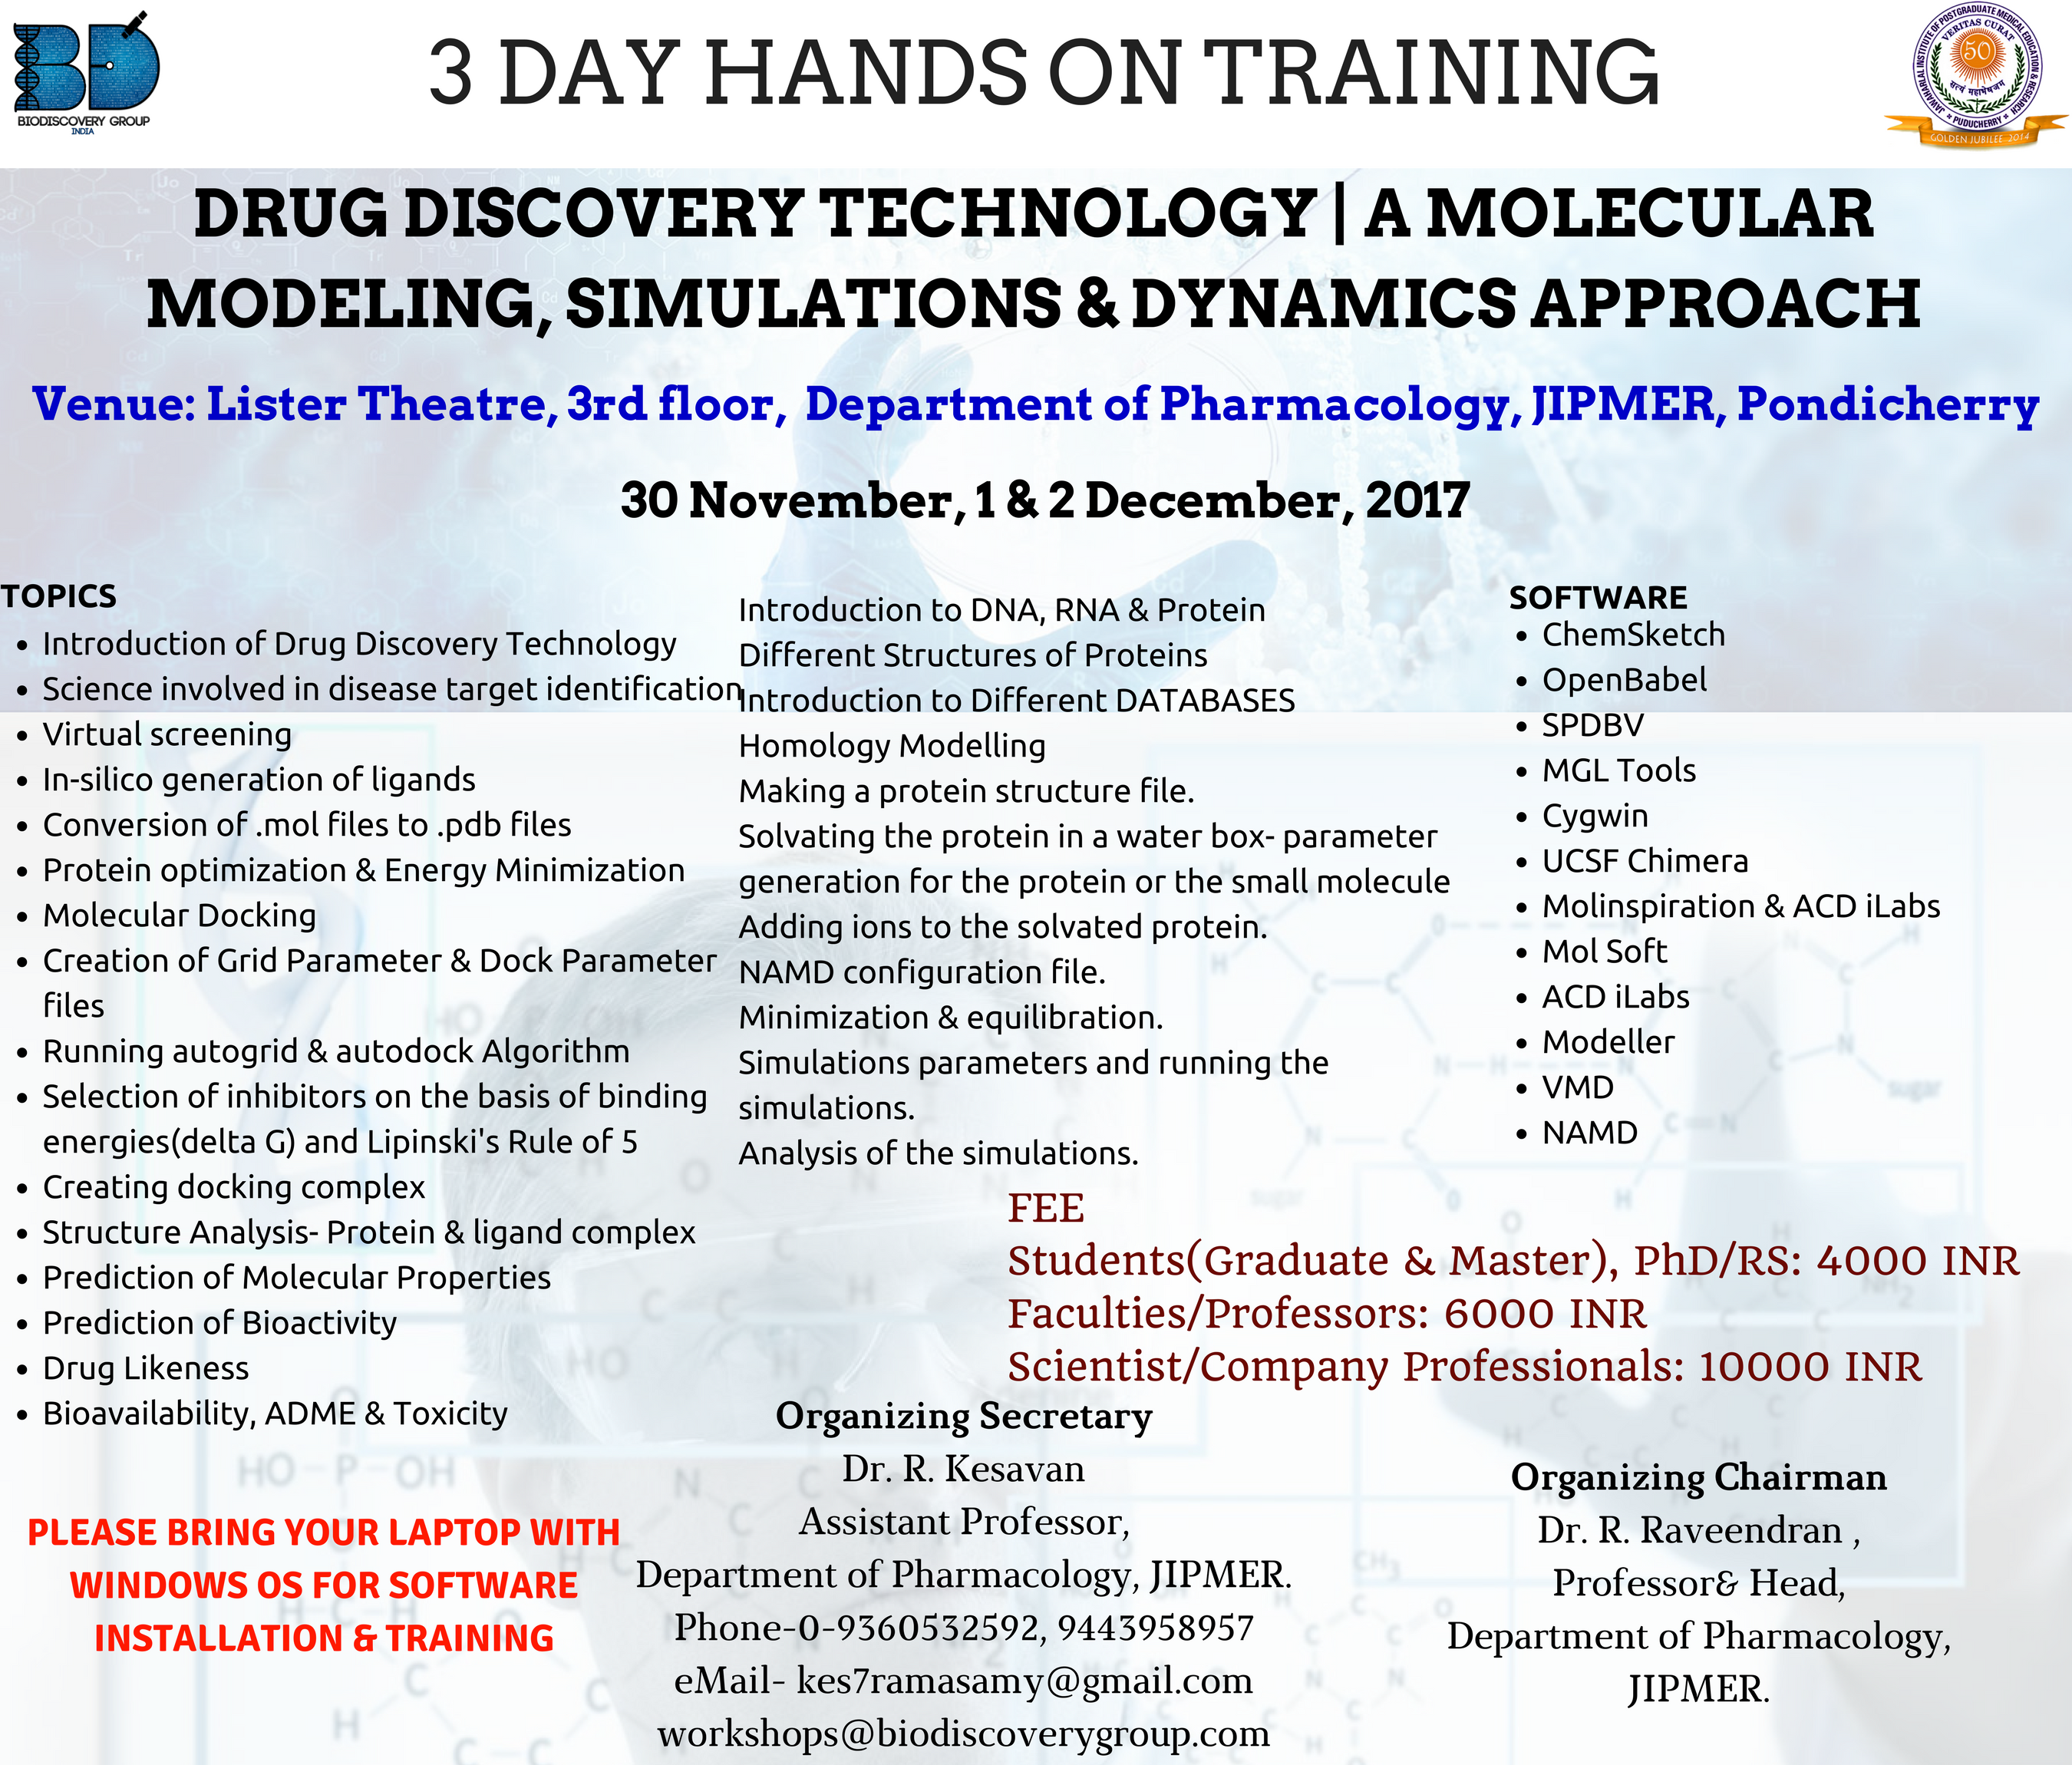 workshop on bioinformatics and drug discovery in JIPMER in